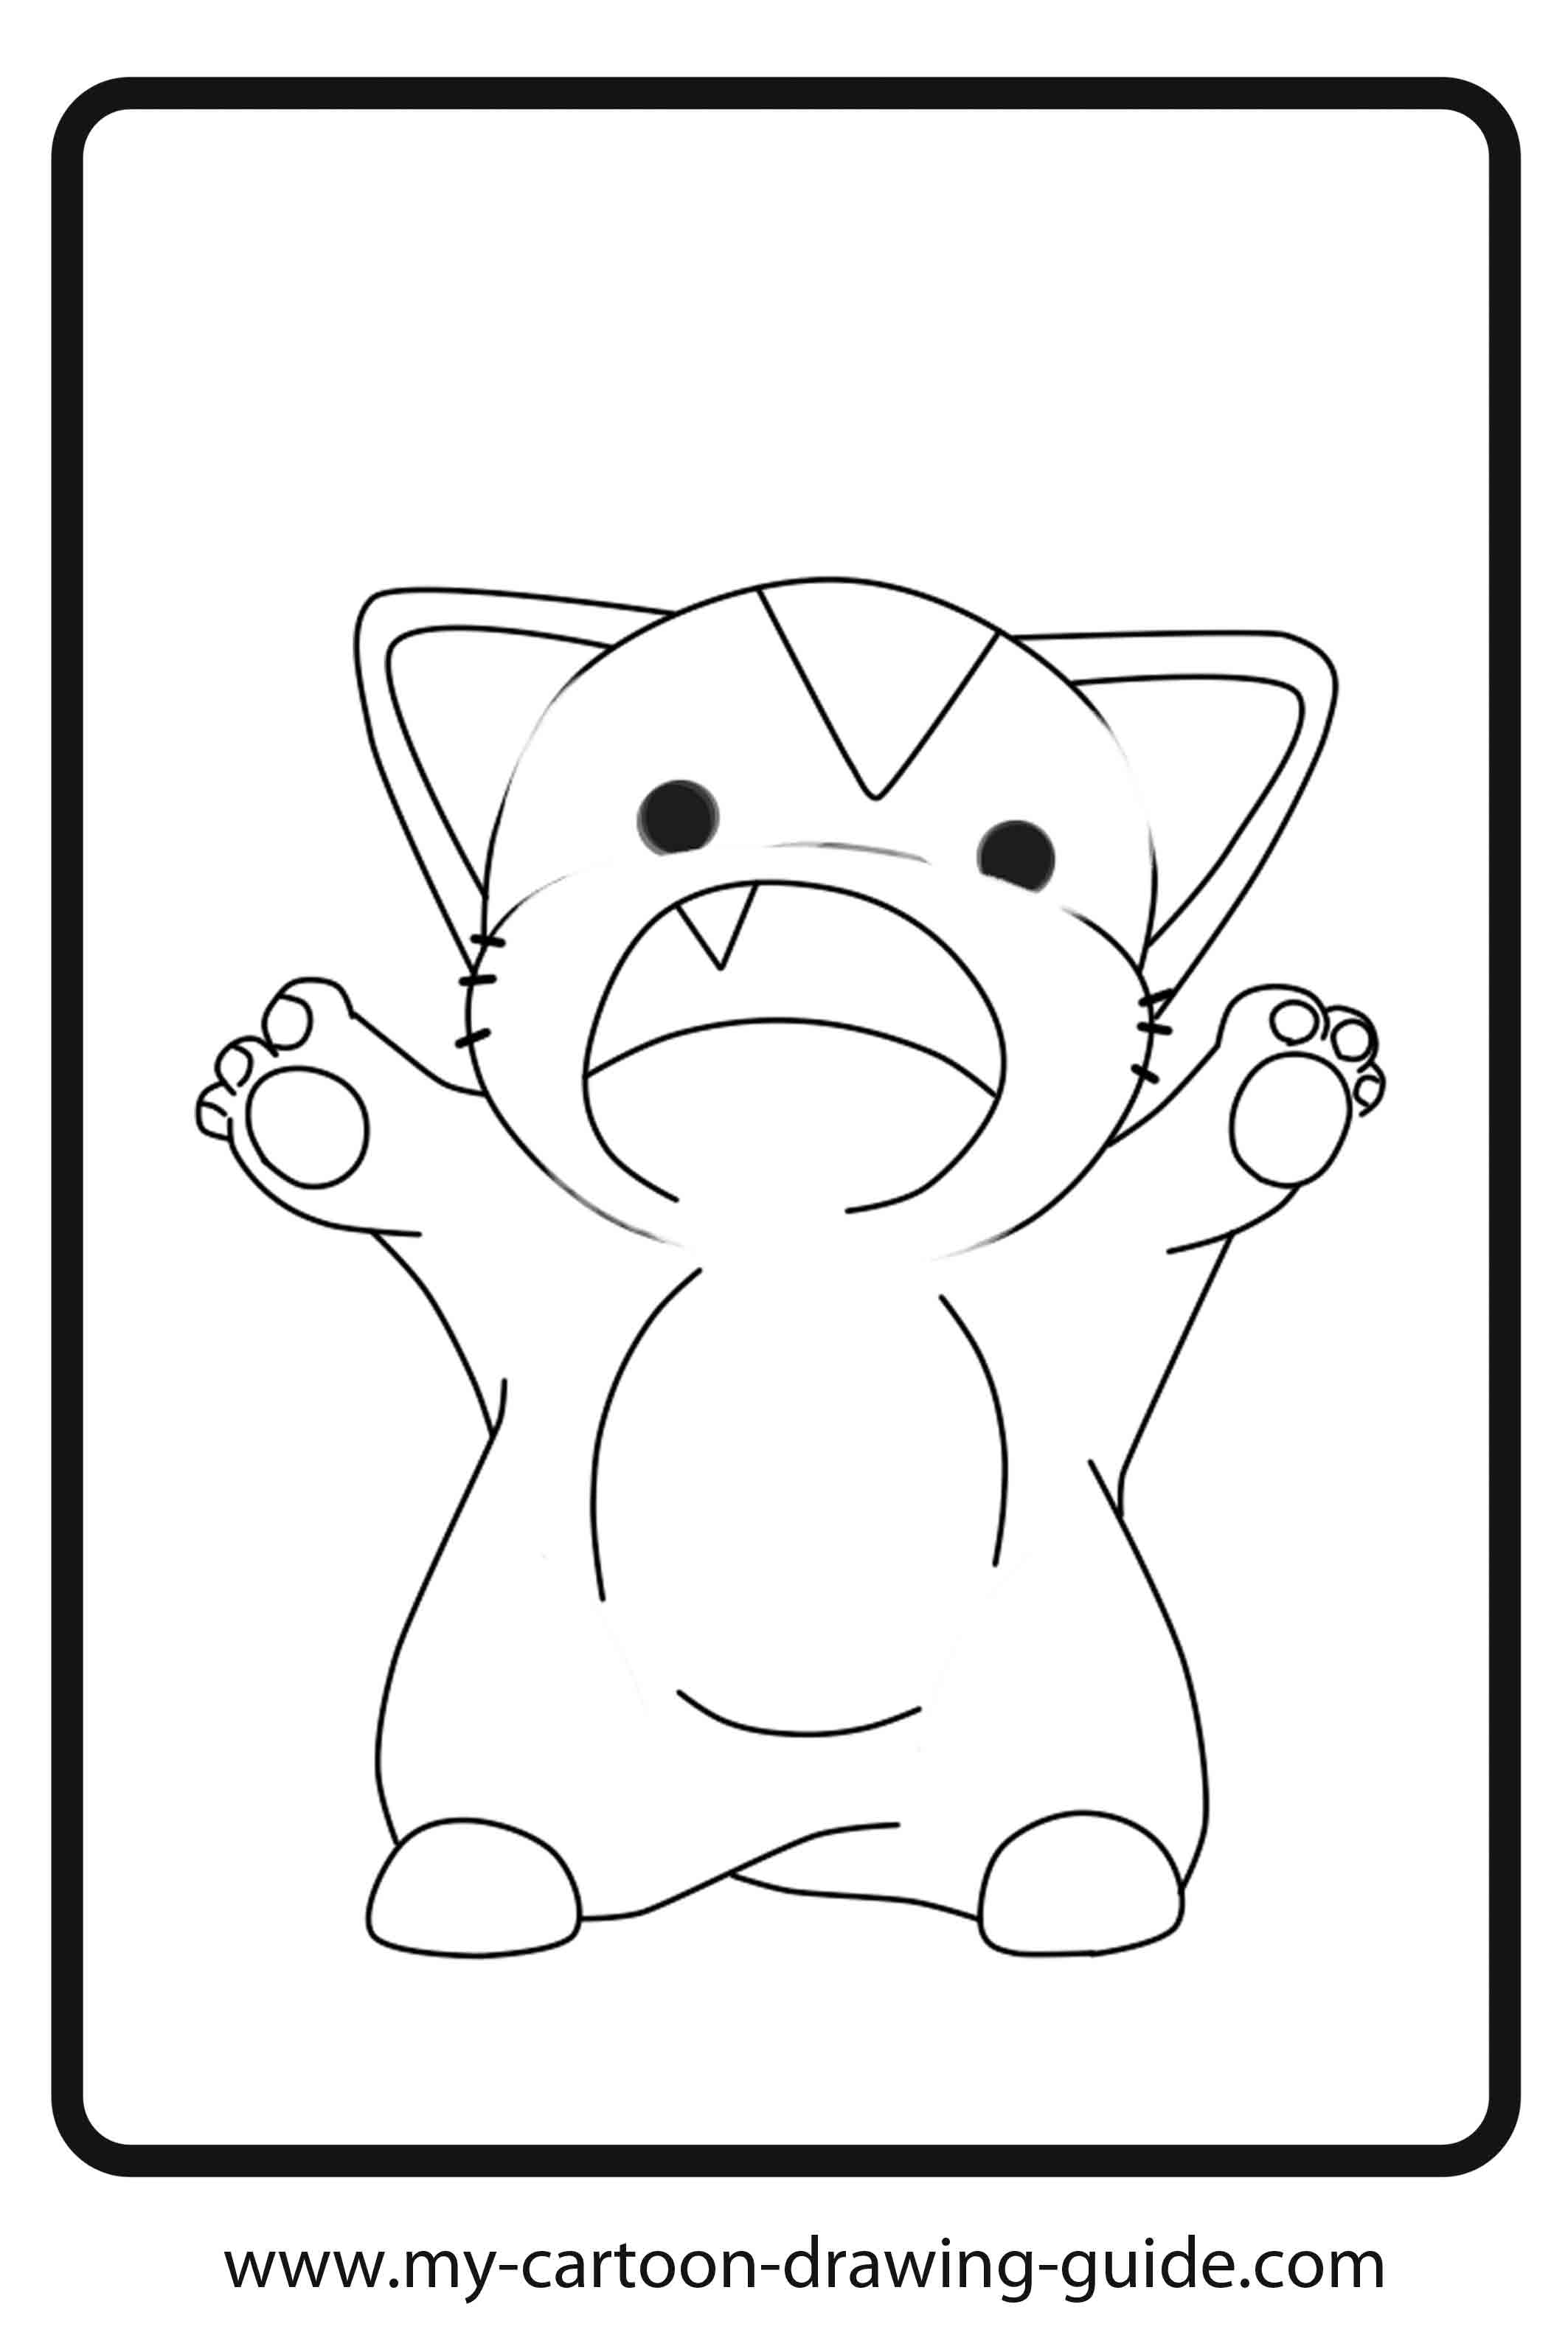 cat girl coloring pages interactive magazine catwoman coloring pictures for kids coloring girl pages cat